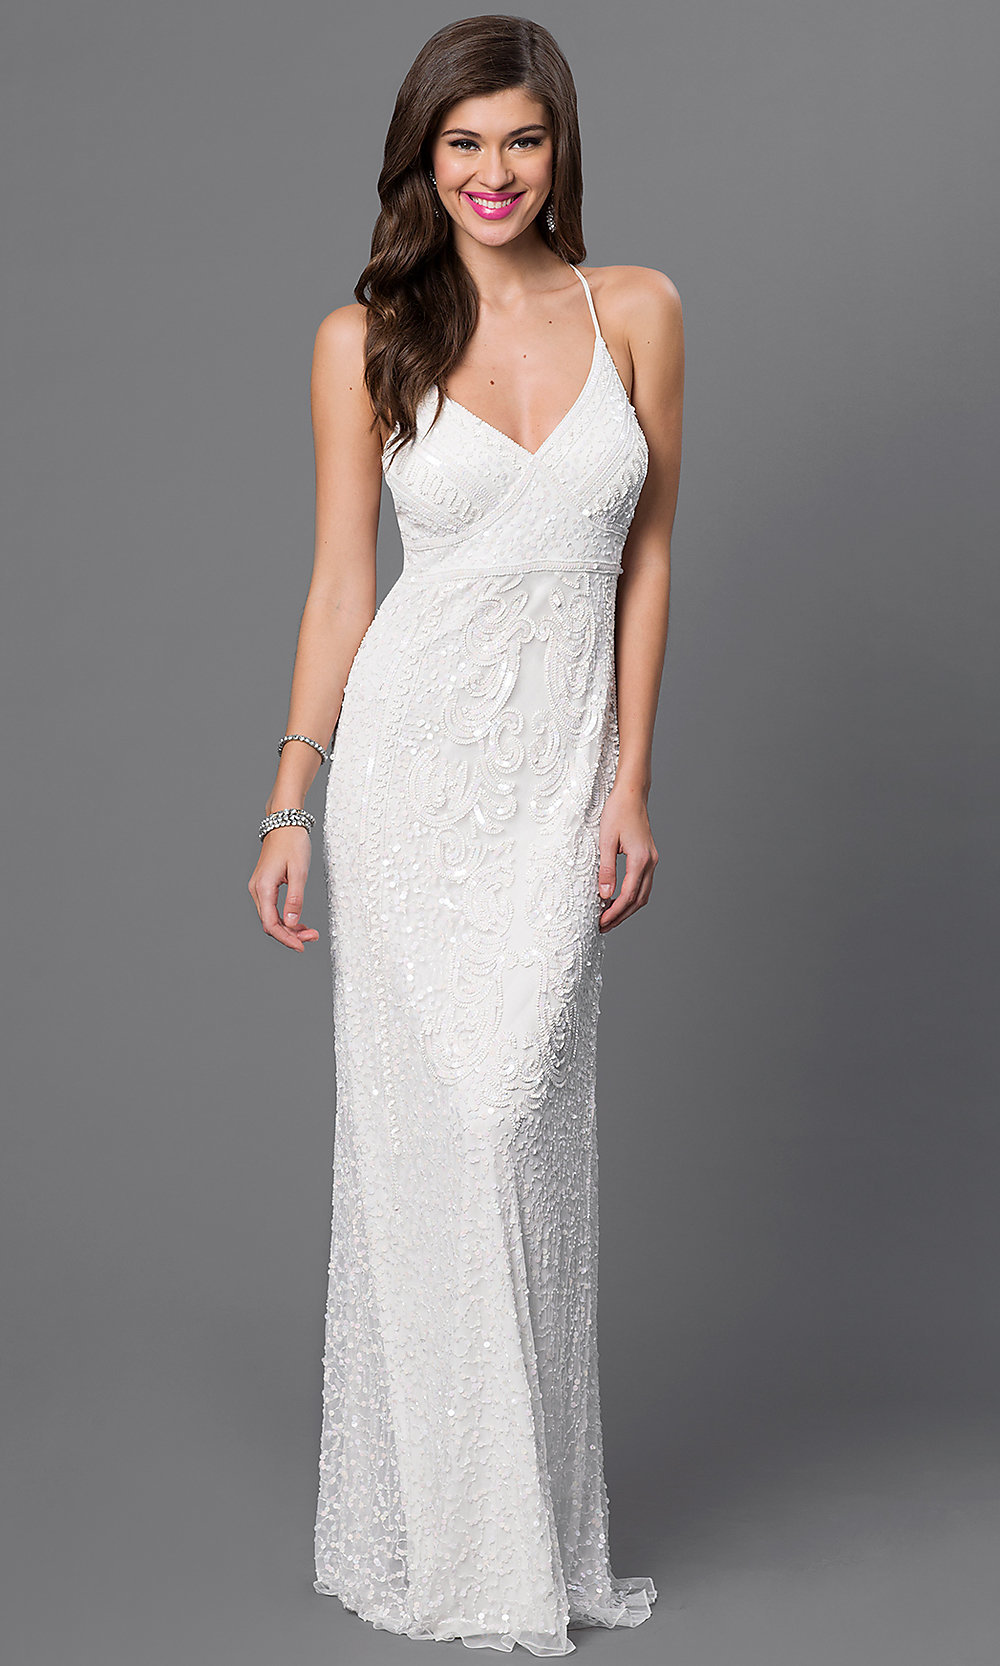 Marina White Sequin Spaghetti-Strap Dress-PromGirl